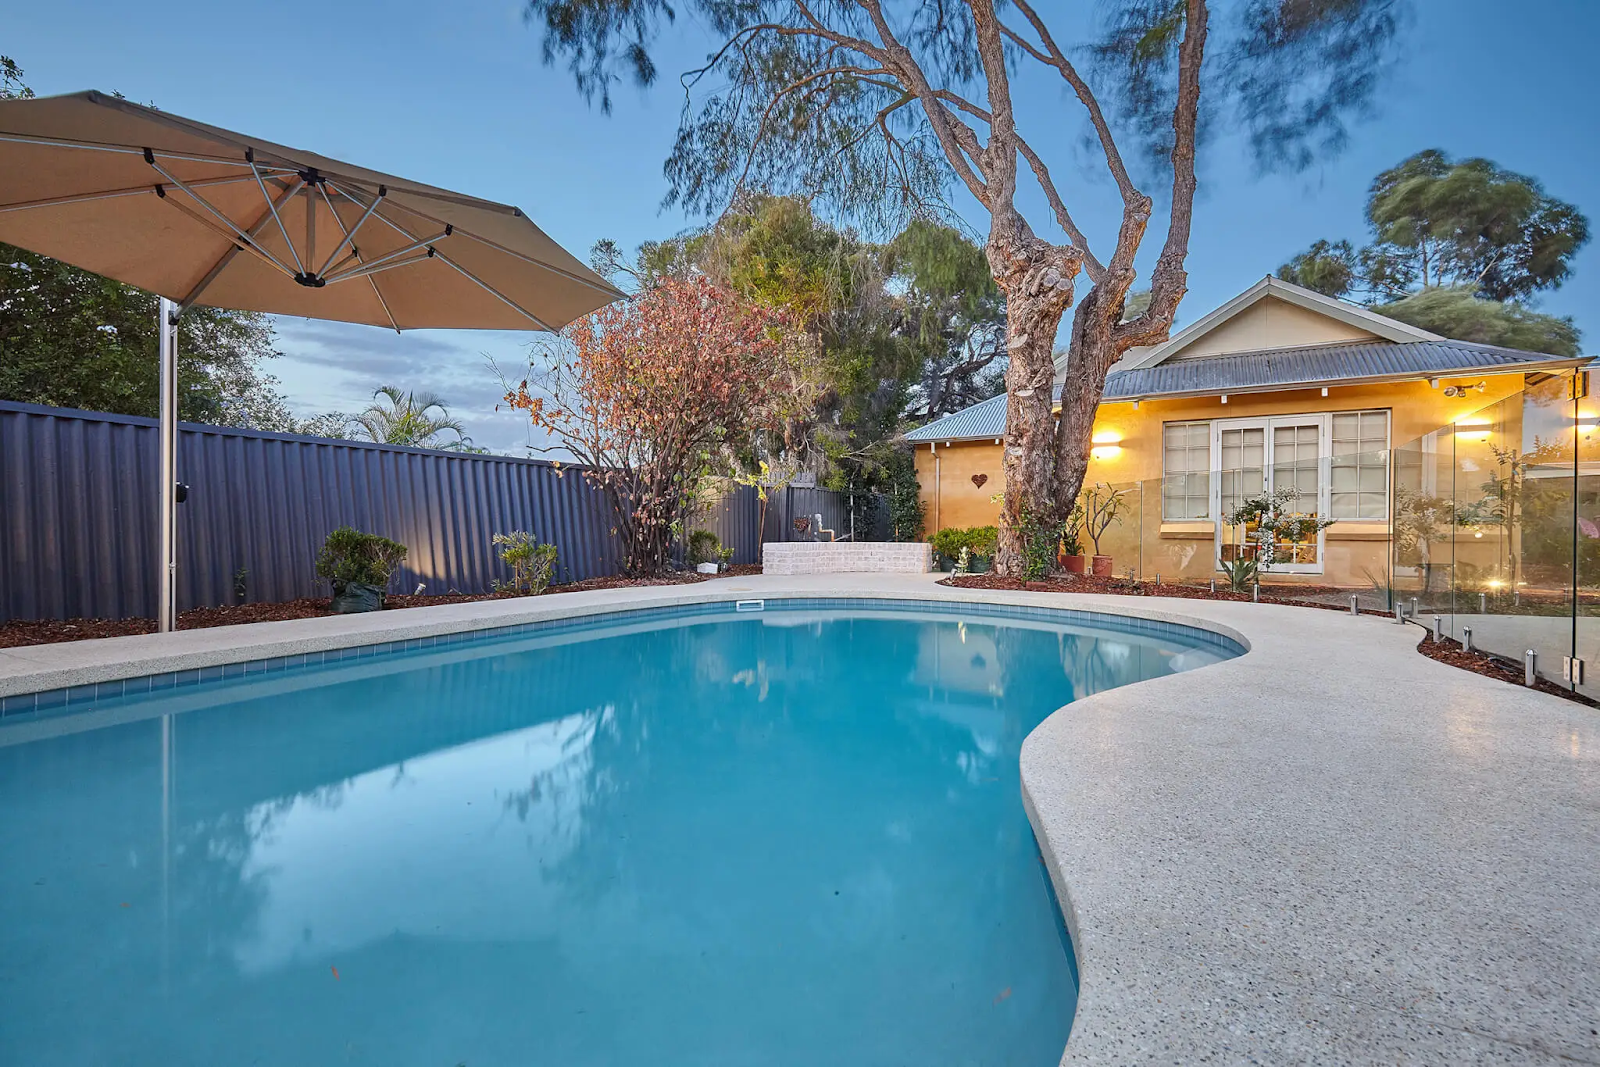 Pool area with concrete surrounds